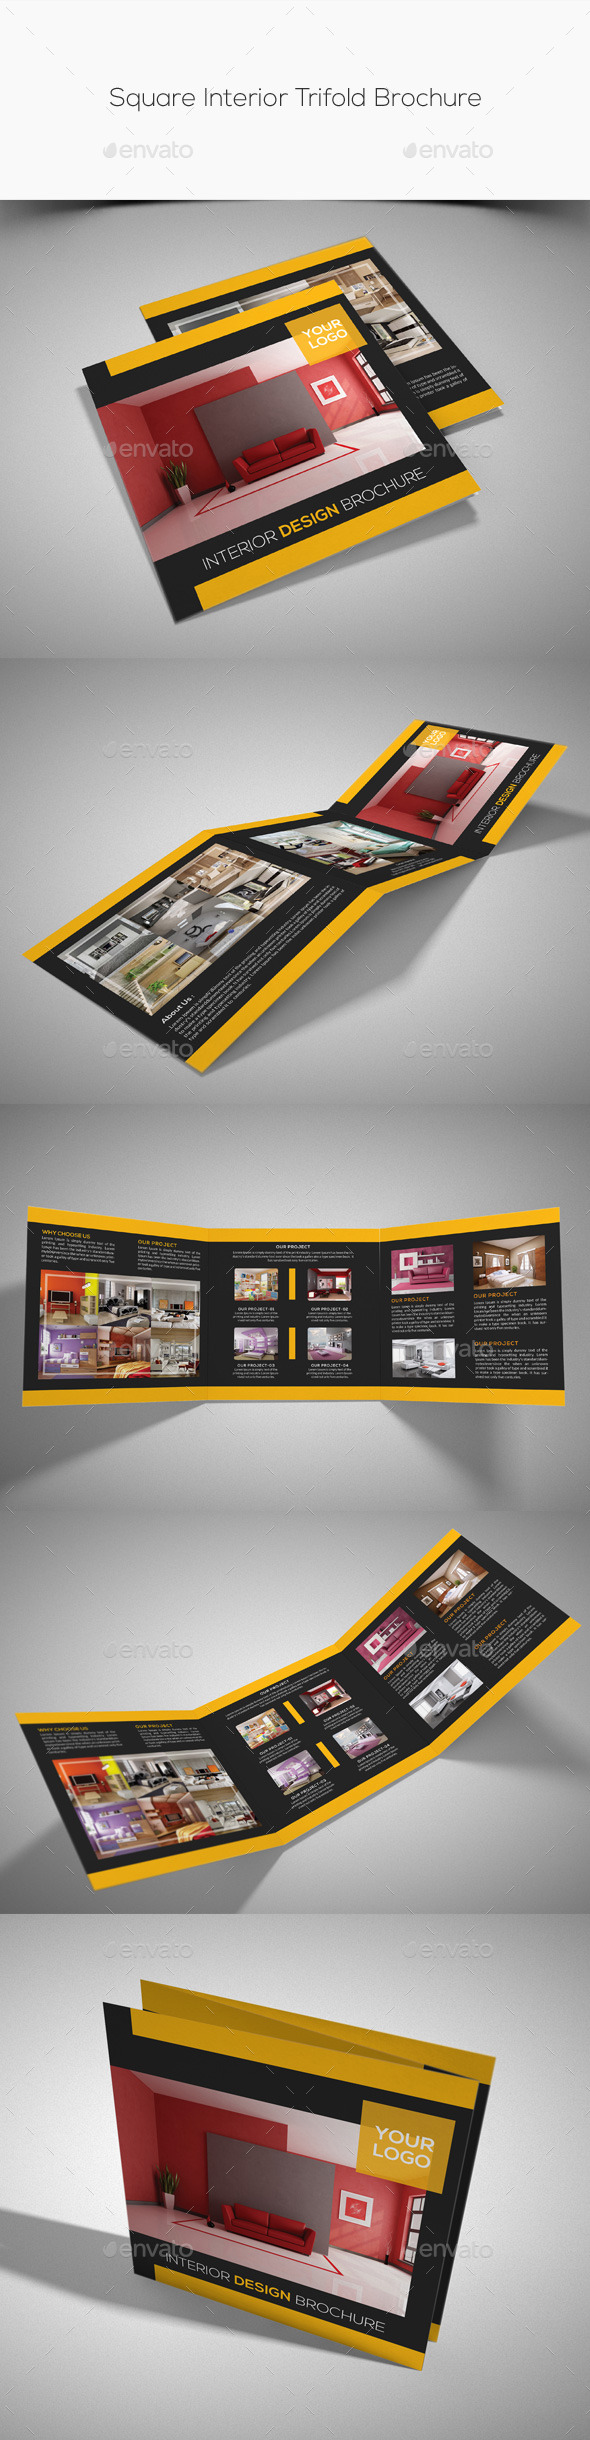 GraphicRiver Square Interior Trifold Brochure 11462937